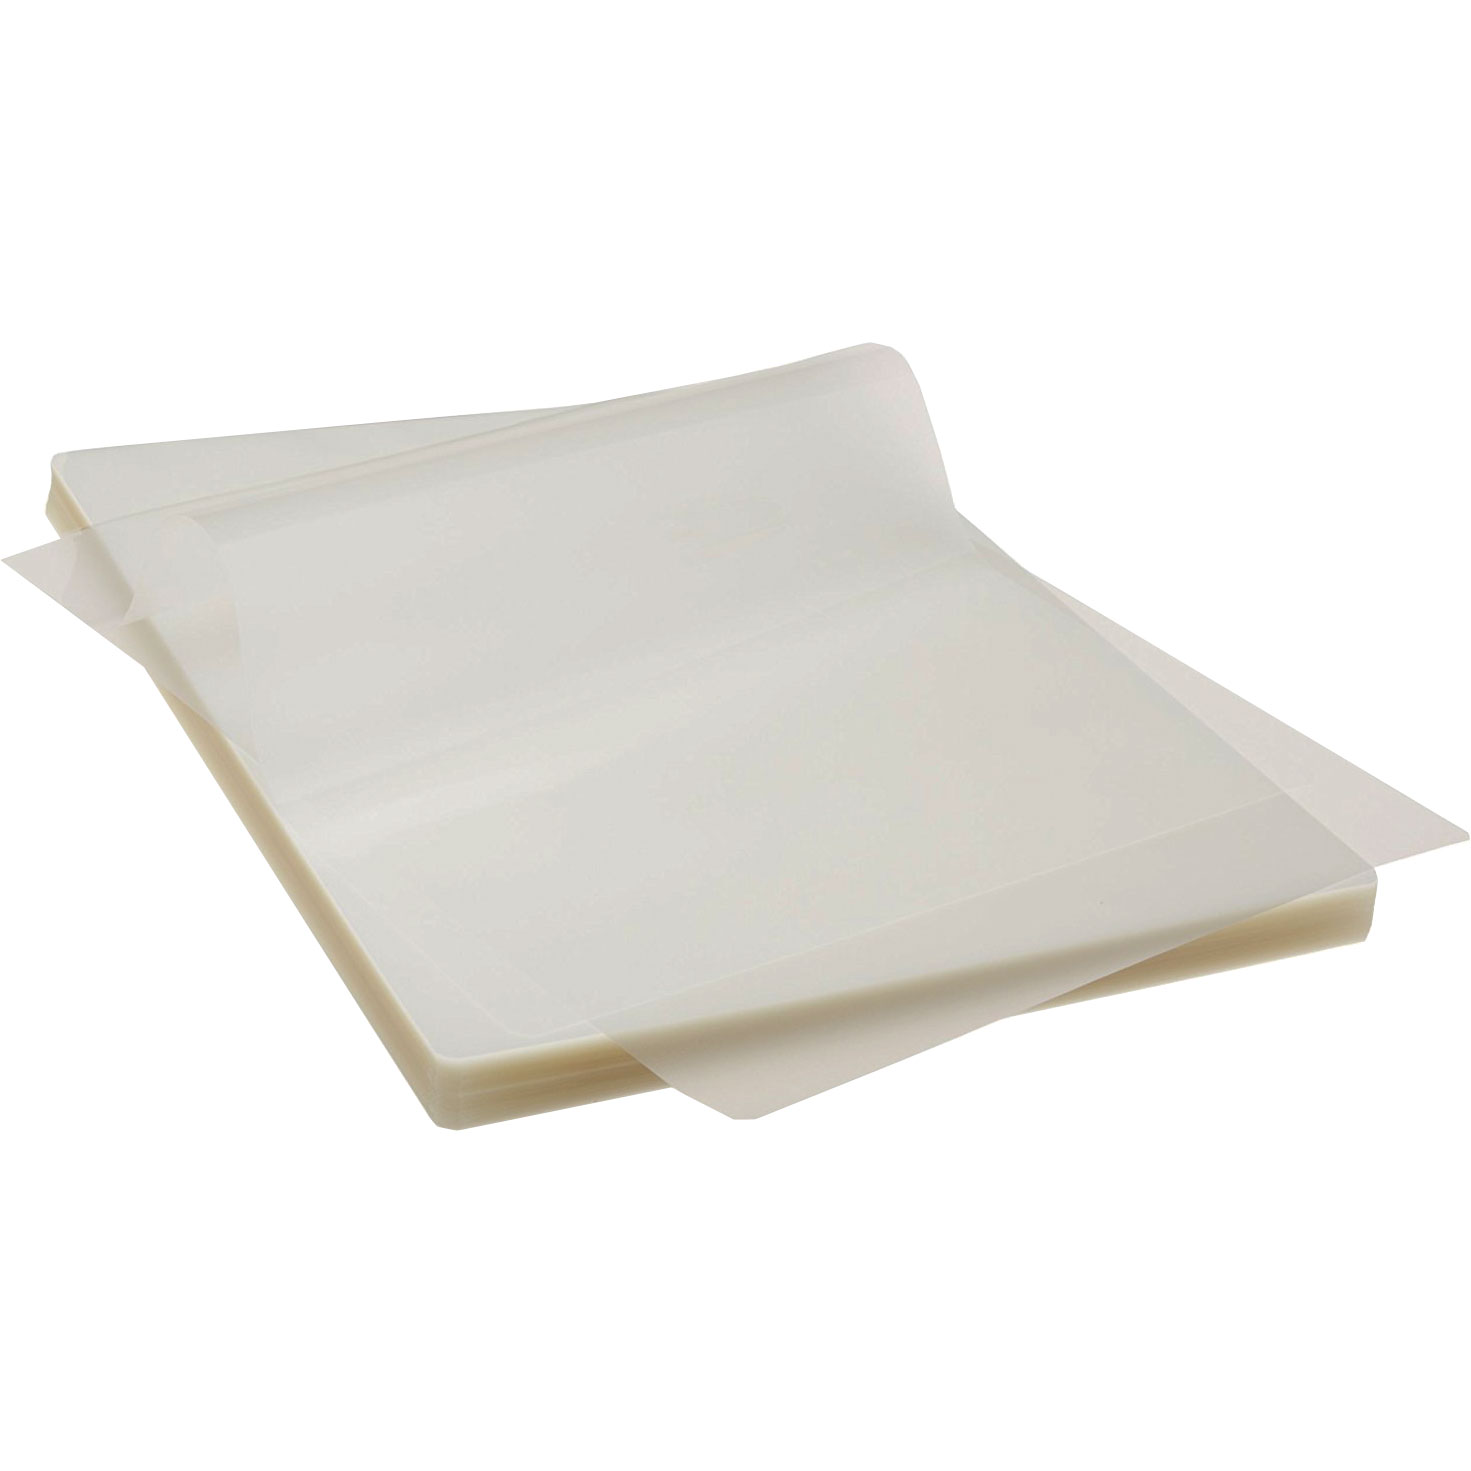 A1 Super Matt & Gloss Laminating Pouches (125 Pk)